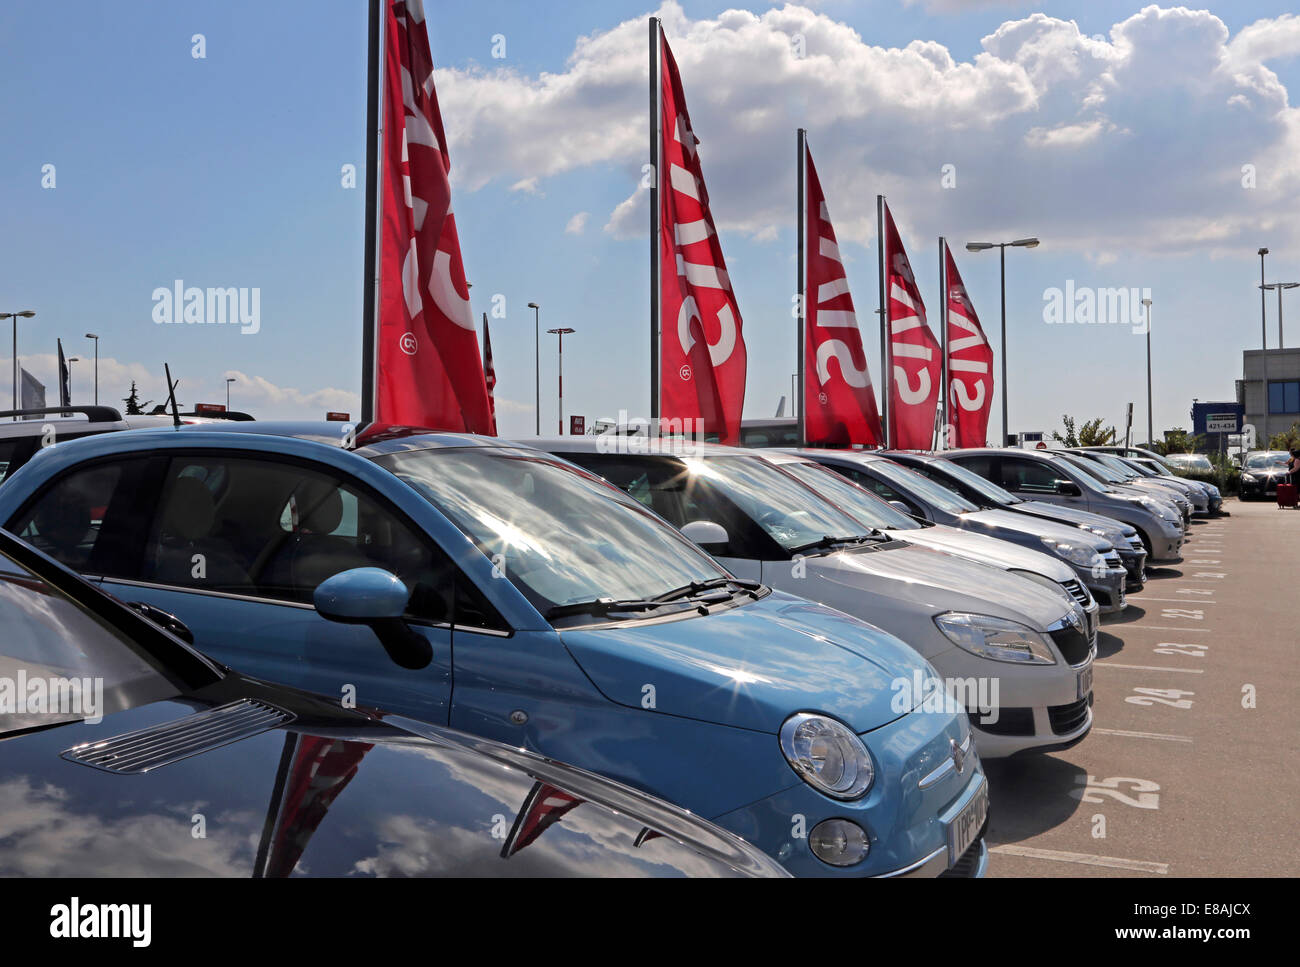 Athens greece athens international airport avis rental cars stock image